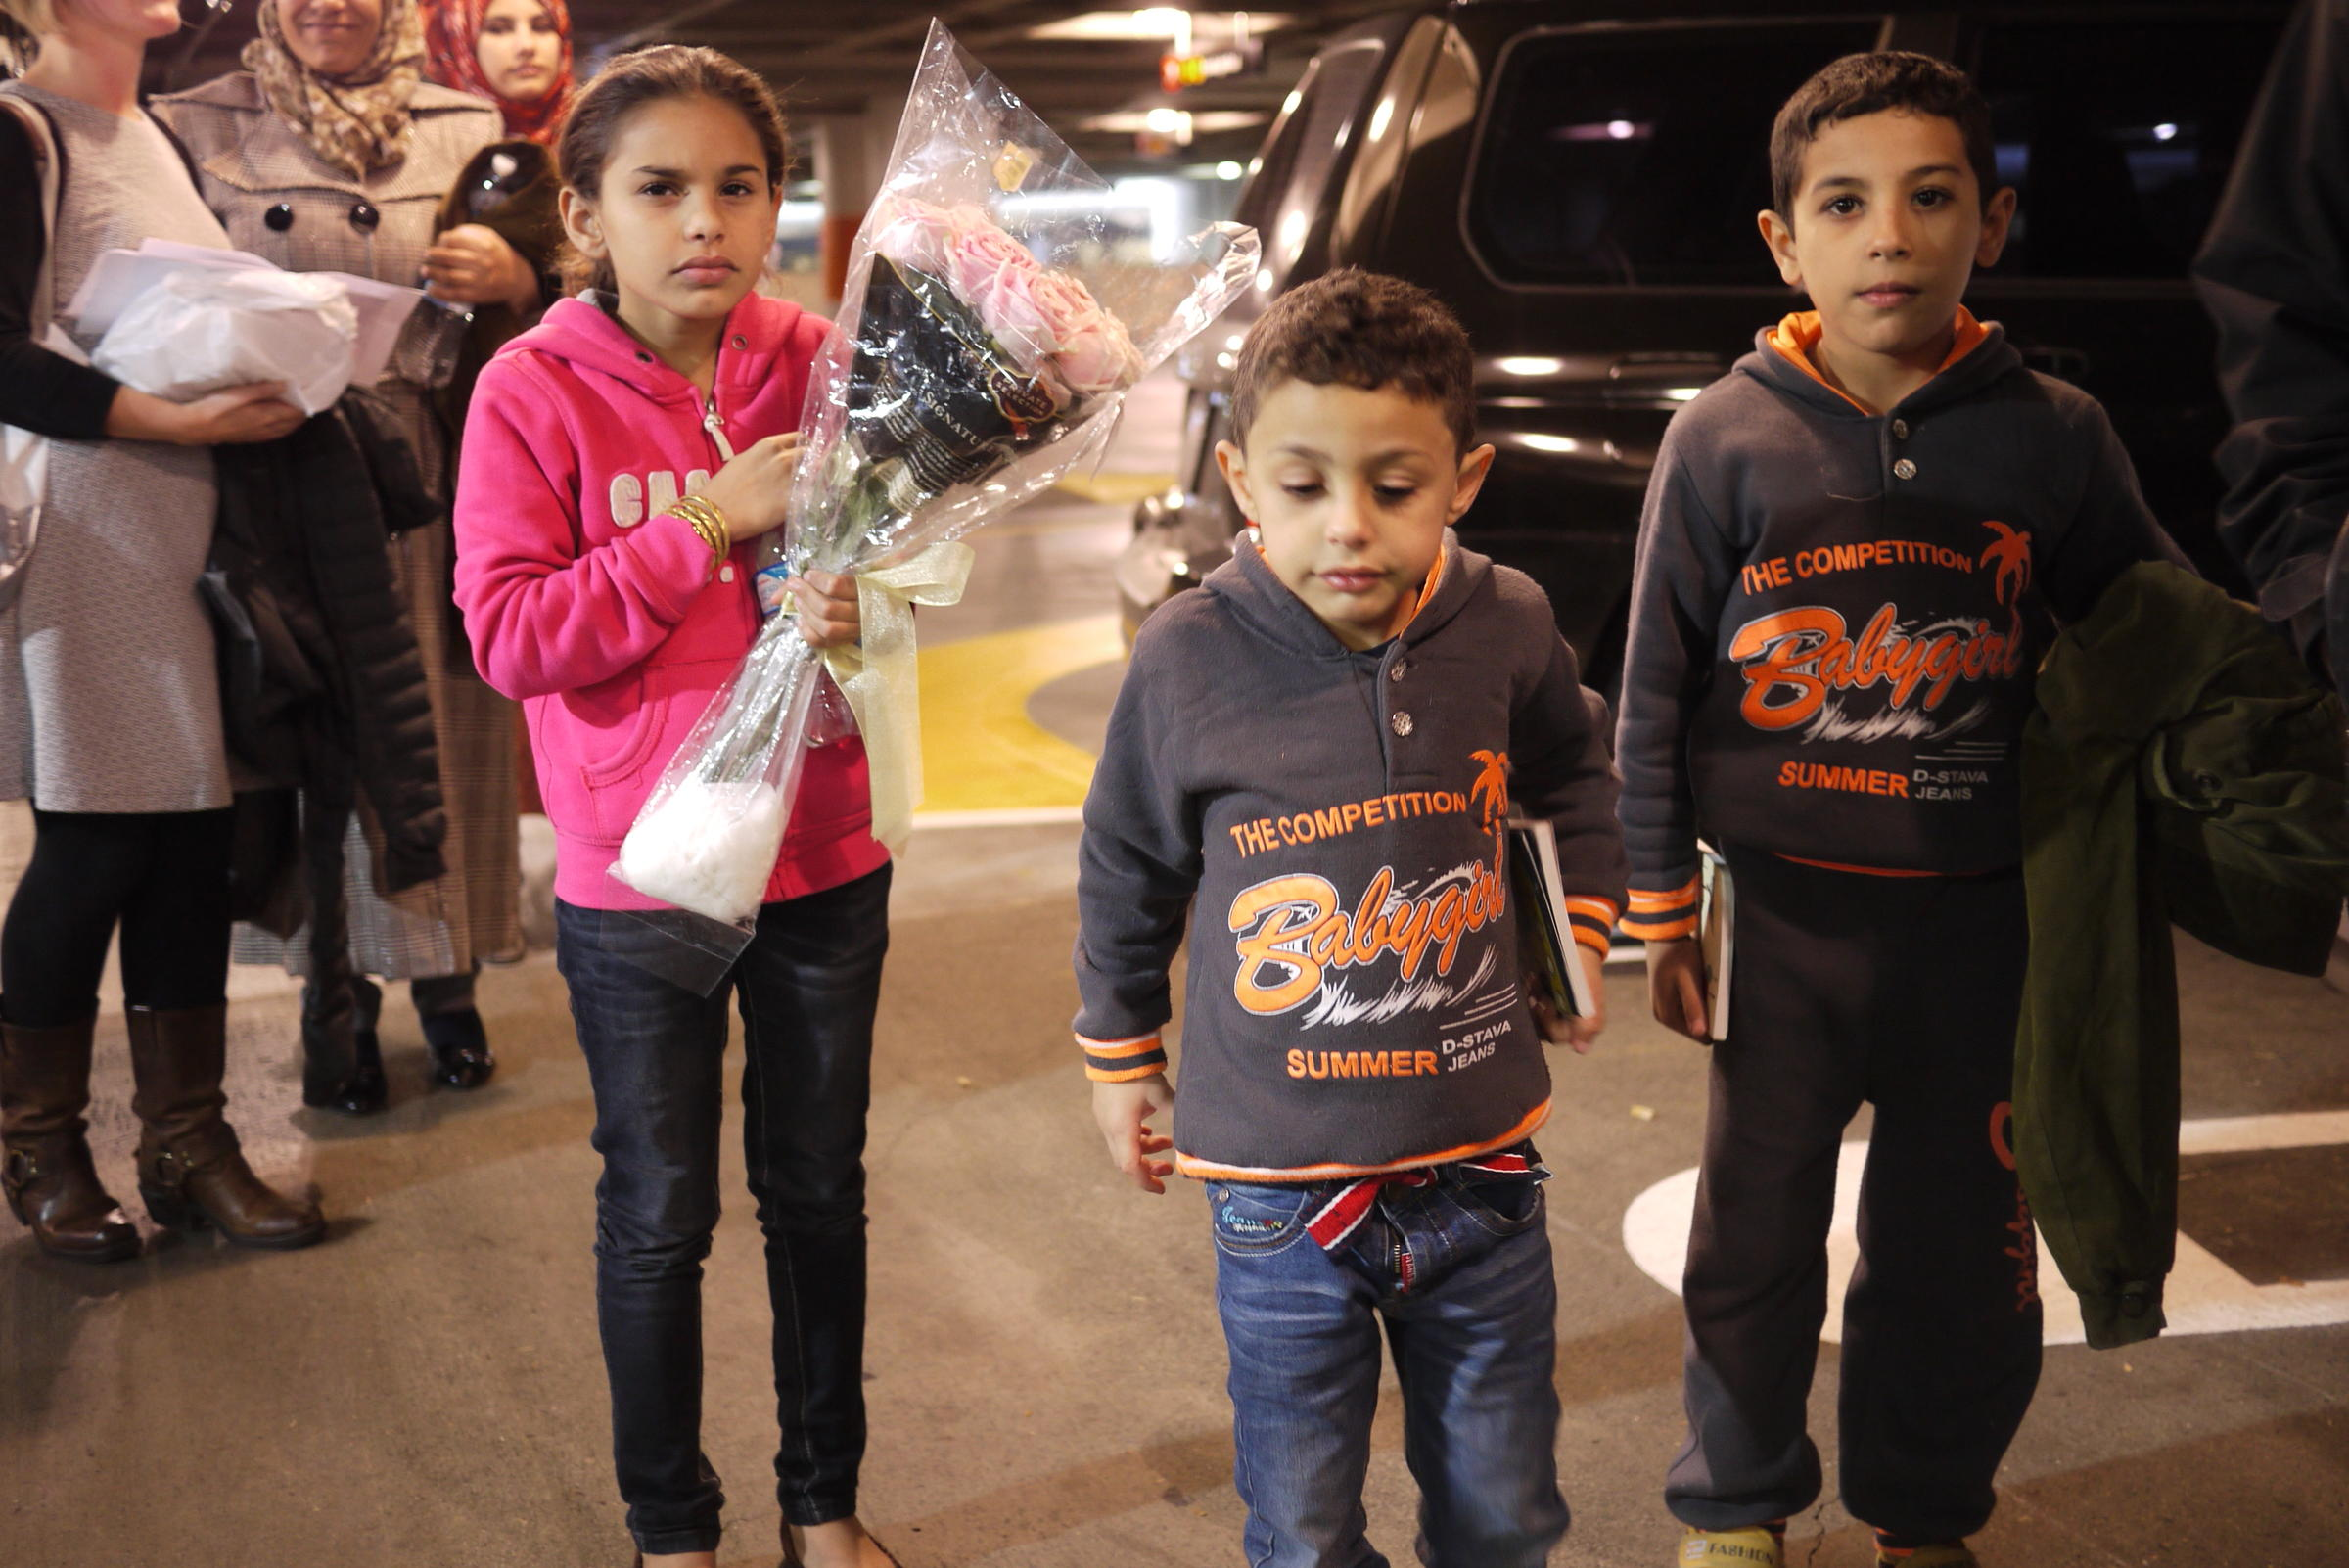 Syrian refugees arriving in Seattle